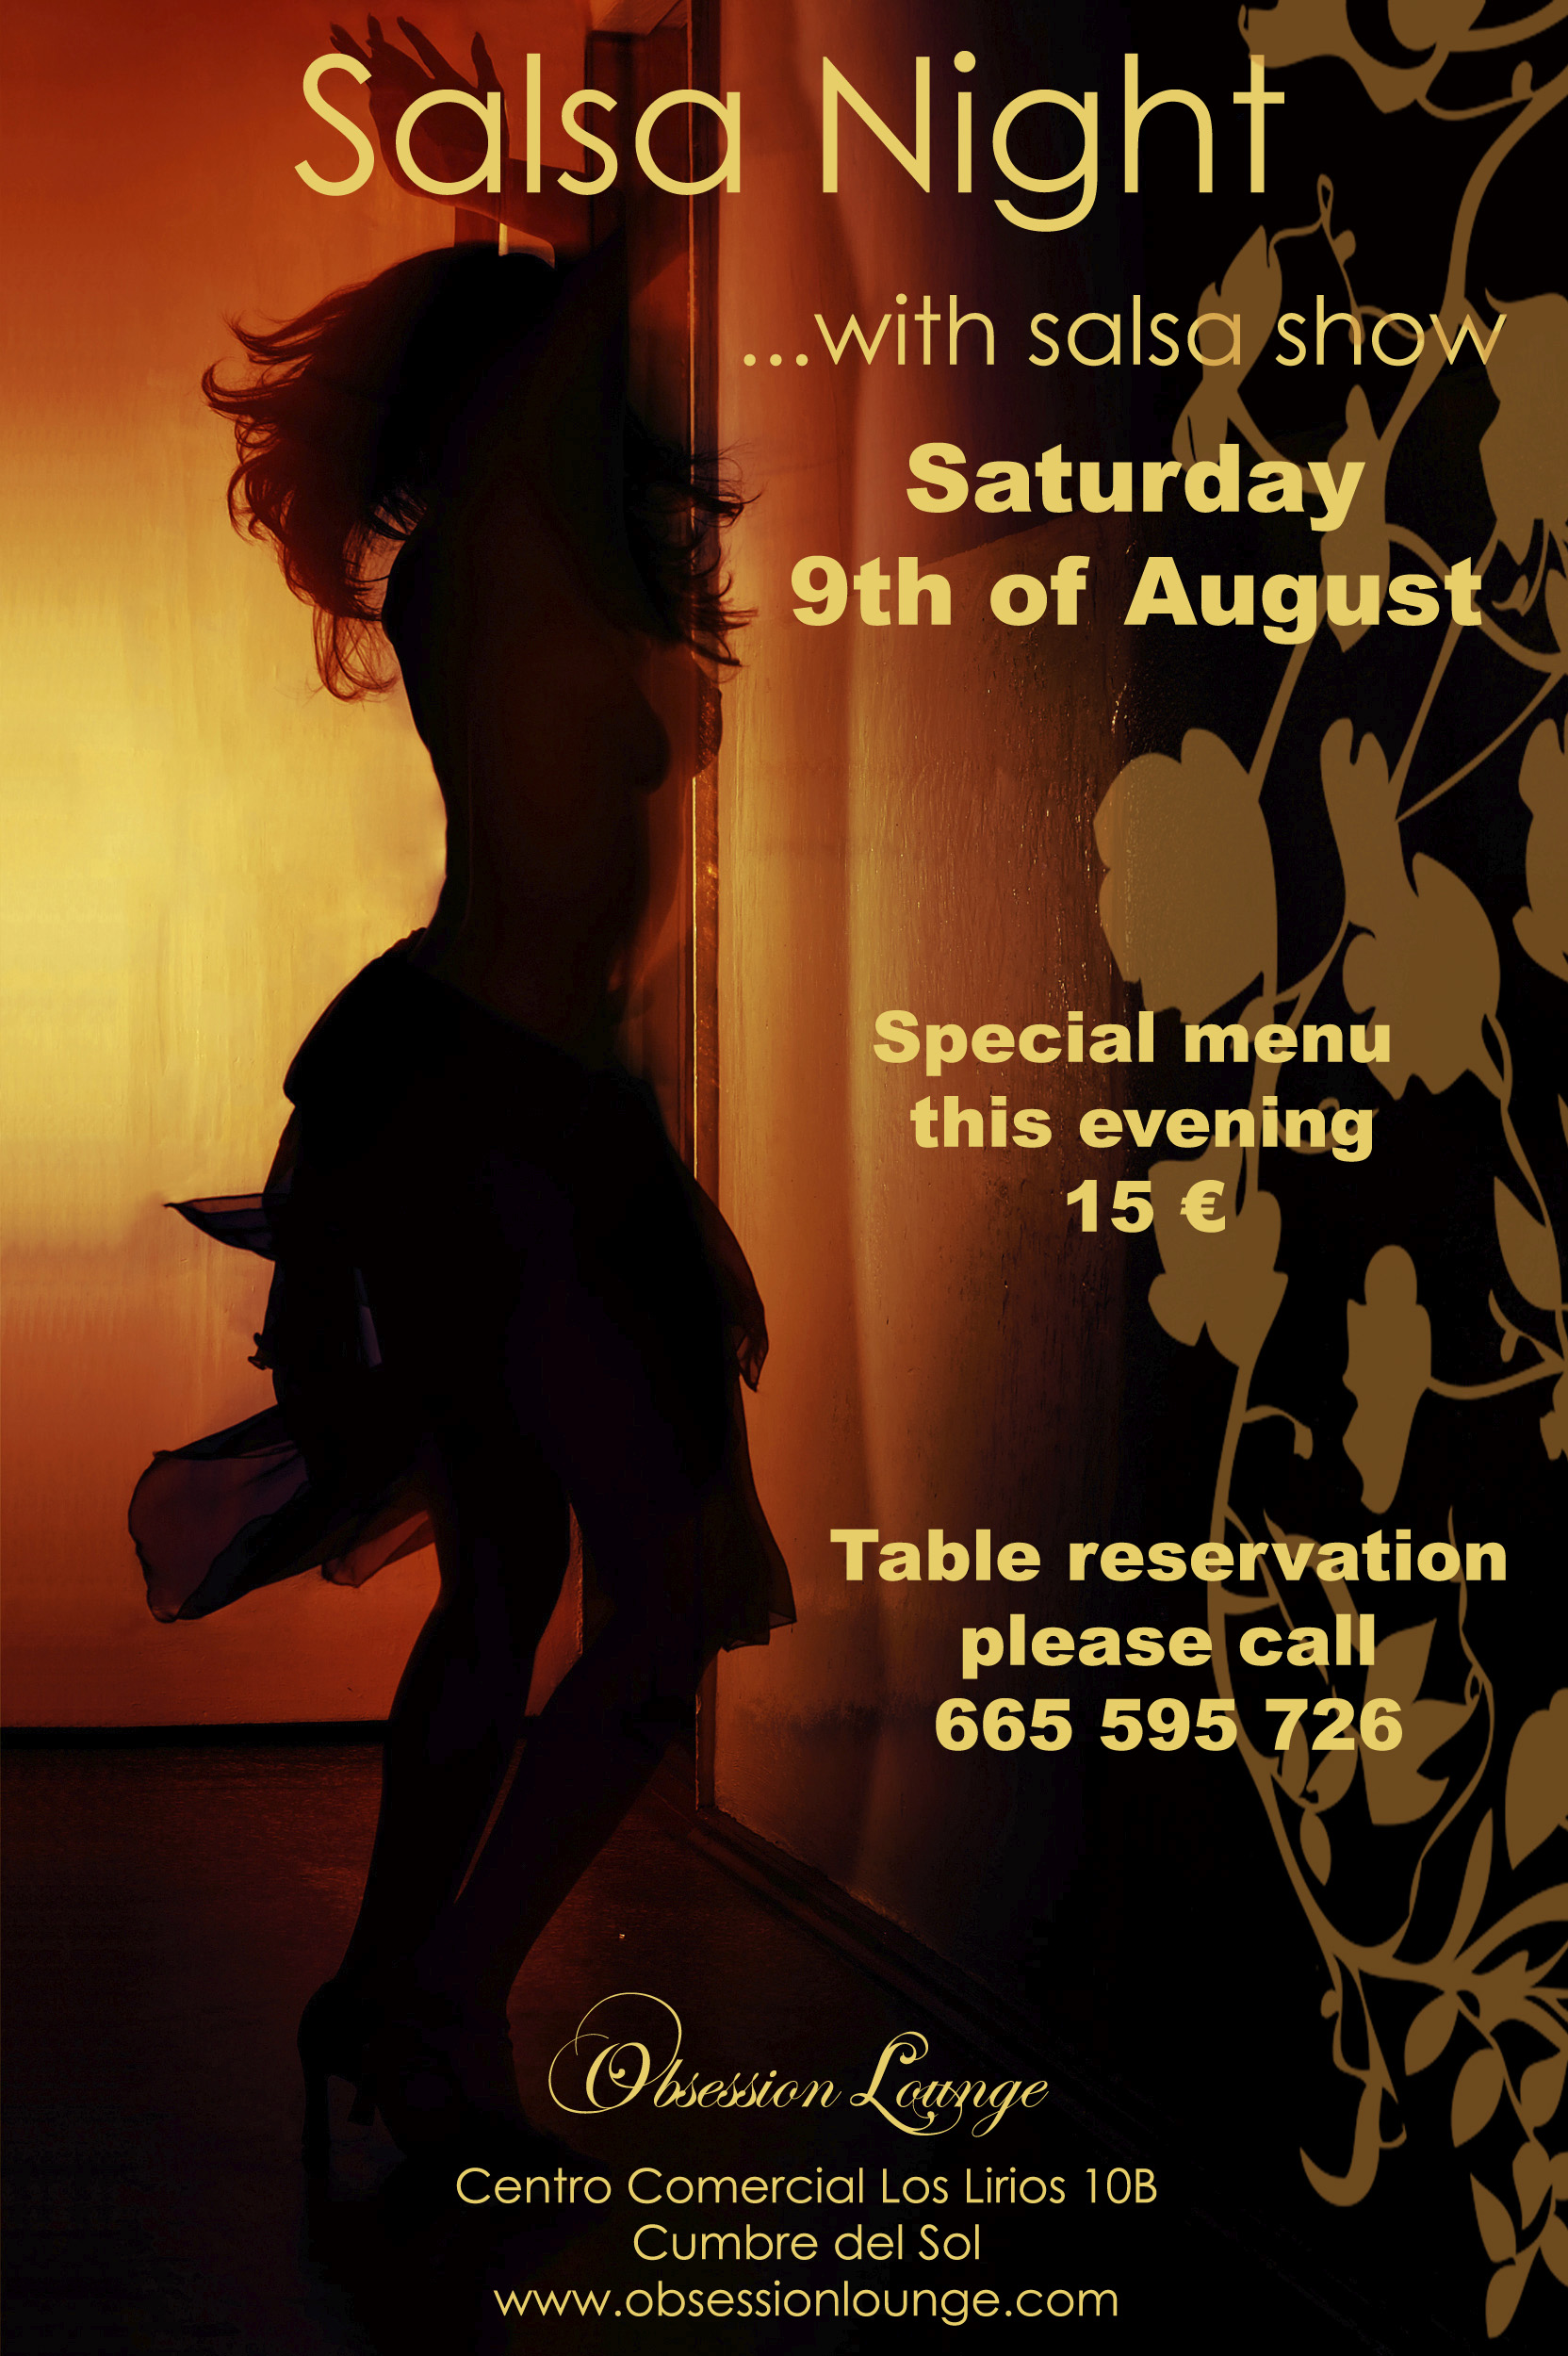 Poster of the Salsa night organized by Obsession Lounge